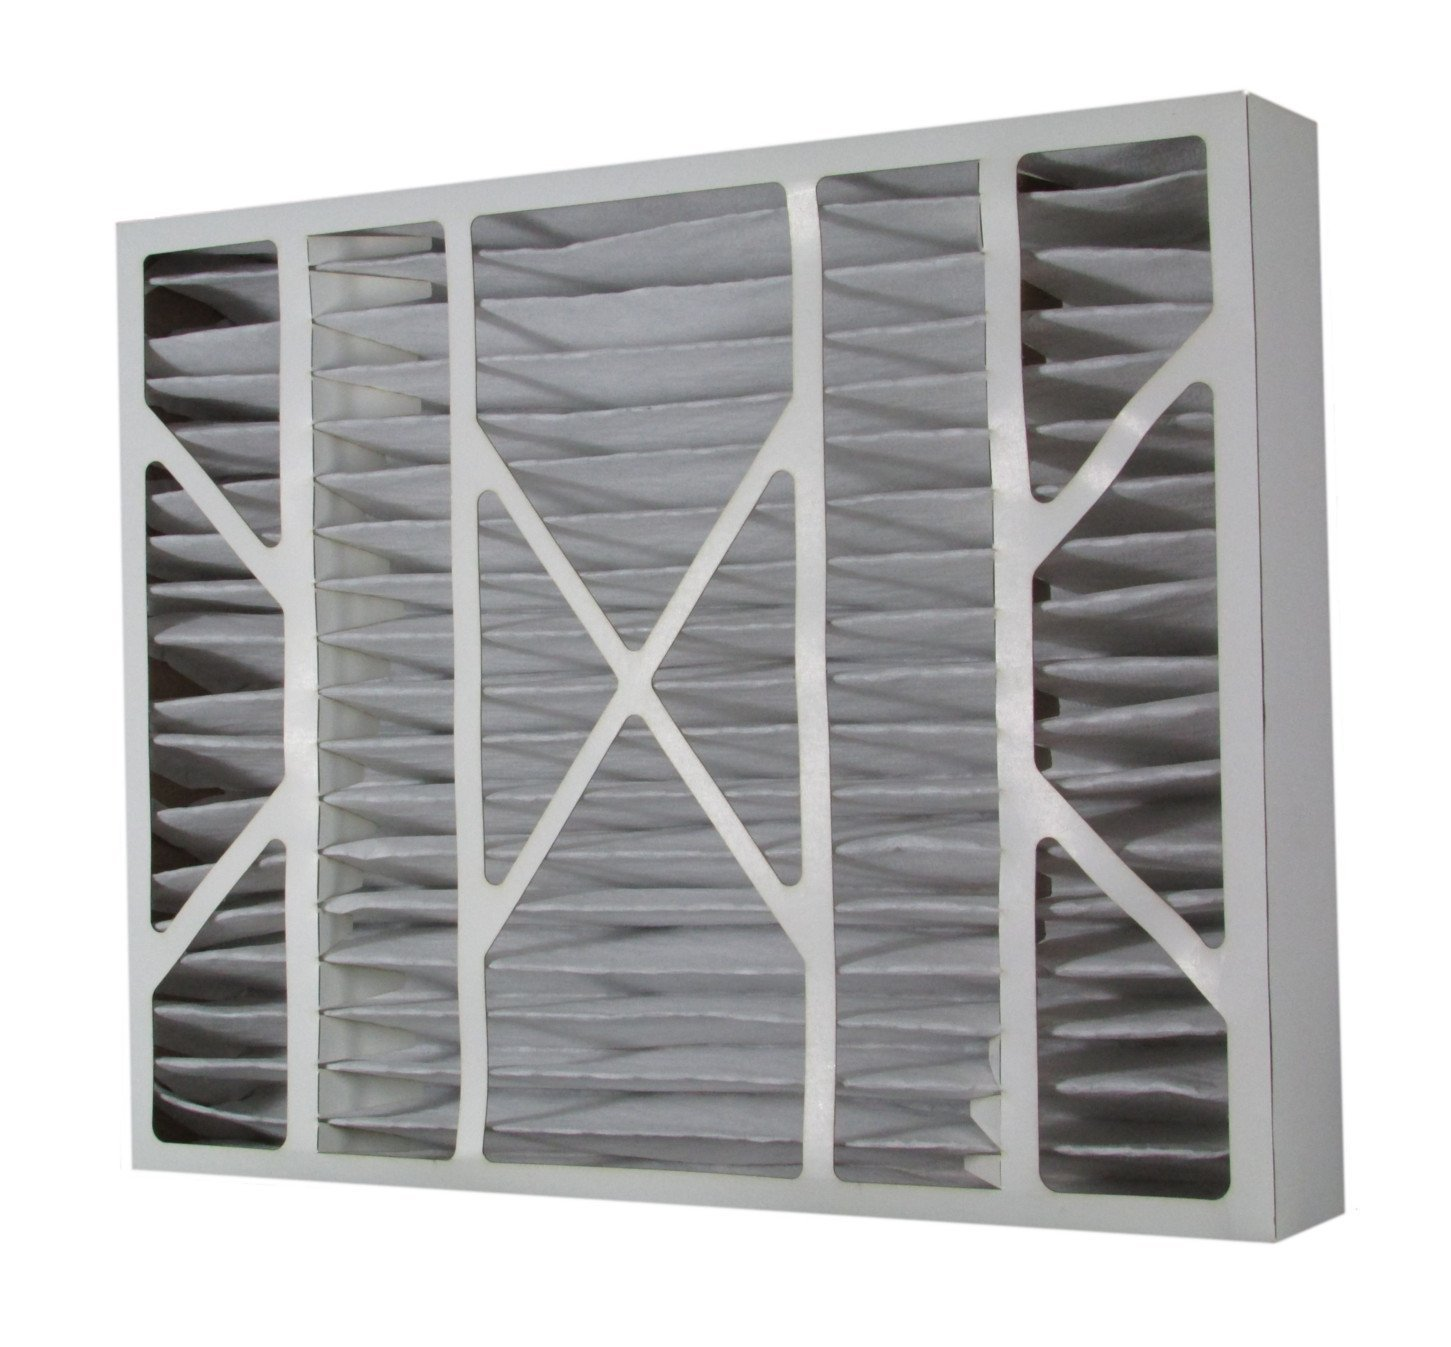 Assigned by Sterling Seal & Supply P25-16X25X5X1.stel 16x25x5 Furnace Air Filter P25 Purolator High End Filter, Replacement for Honeywell F25, Actual Size 16' x 24 7/8' x 4 3/8' (Pack of 1) Actual Size 16 x 24 7/8 x 4 3/8 (Pack of 1)